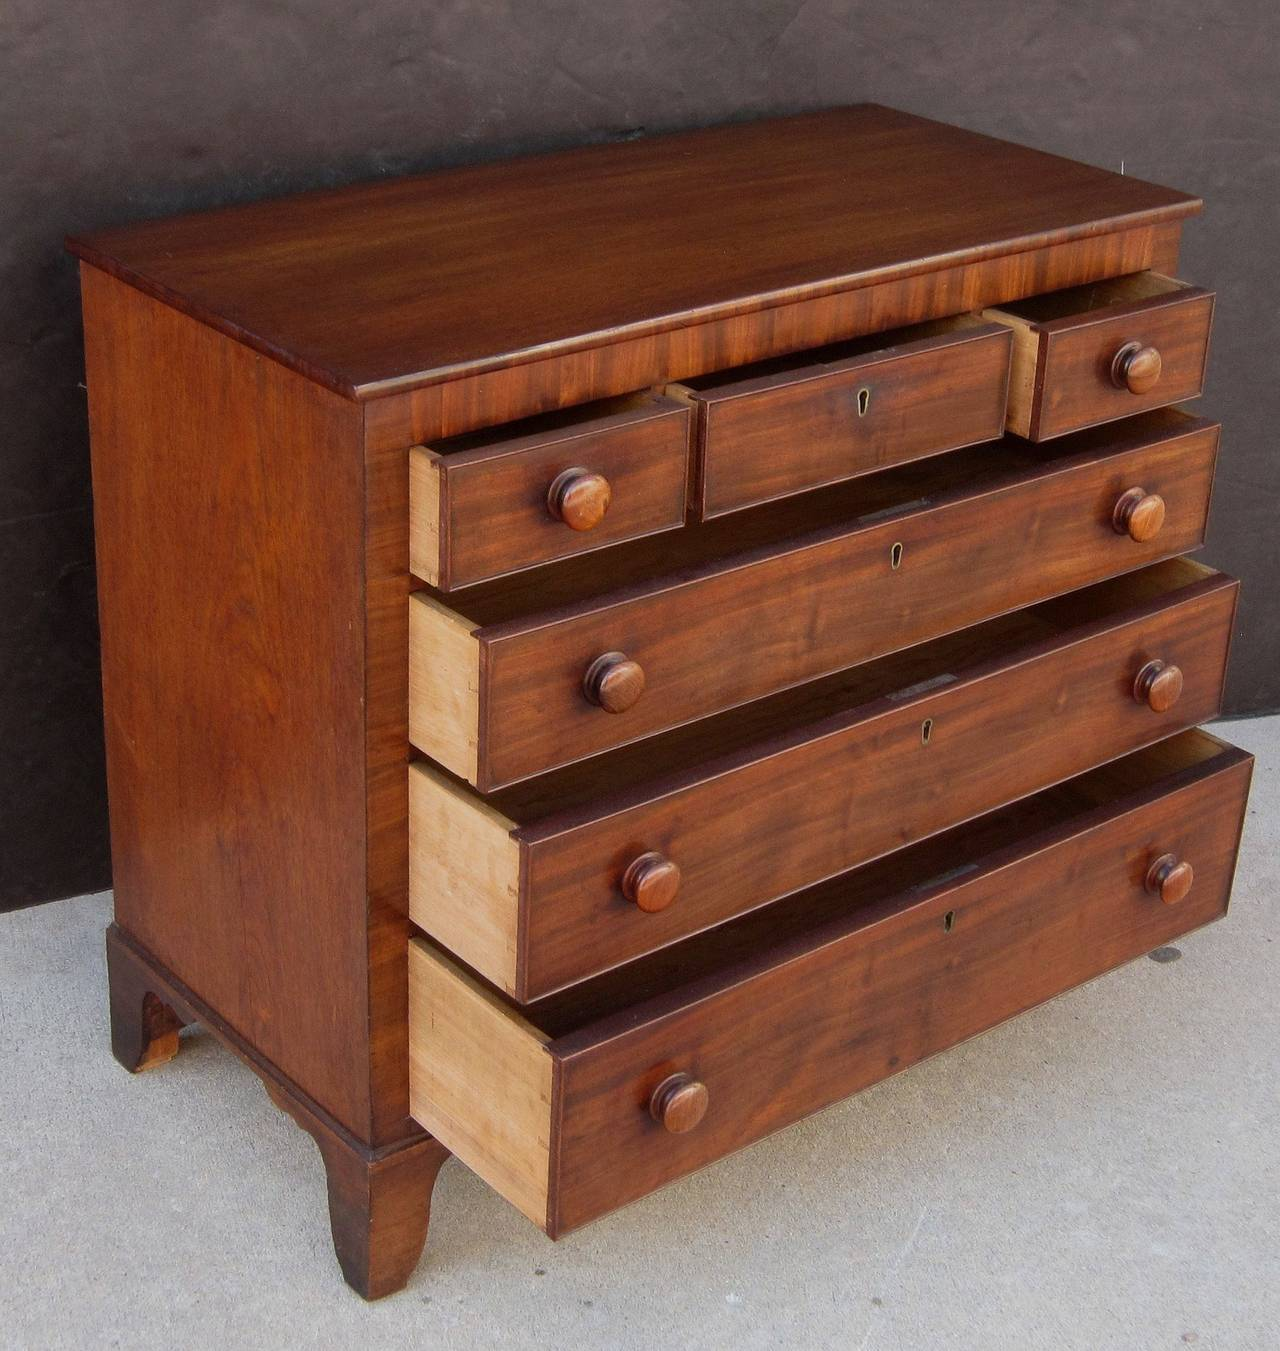 English Small Chest Of Mahogany At 1stdibs. Middle School Desks. Bench Coffee Table. Small Desks Toronto. Ikea Malm Desk. Brown Chest Of Drawers. Standing Work Desks. Help Desk Cover Letter Sample. Champagne Table Runner